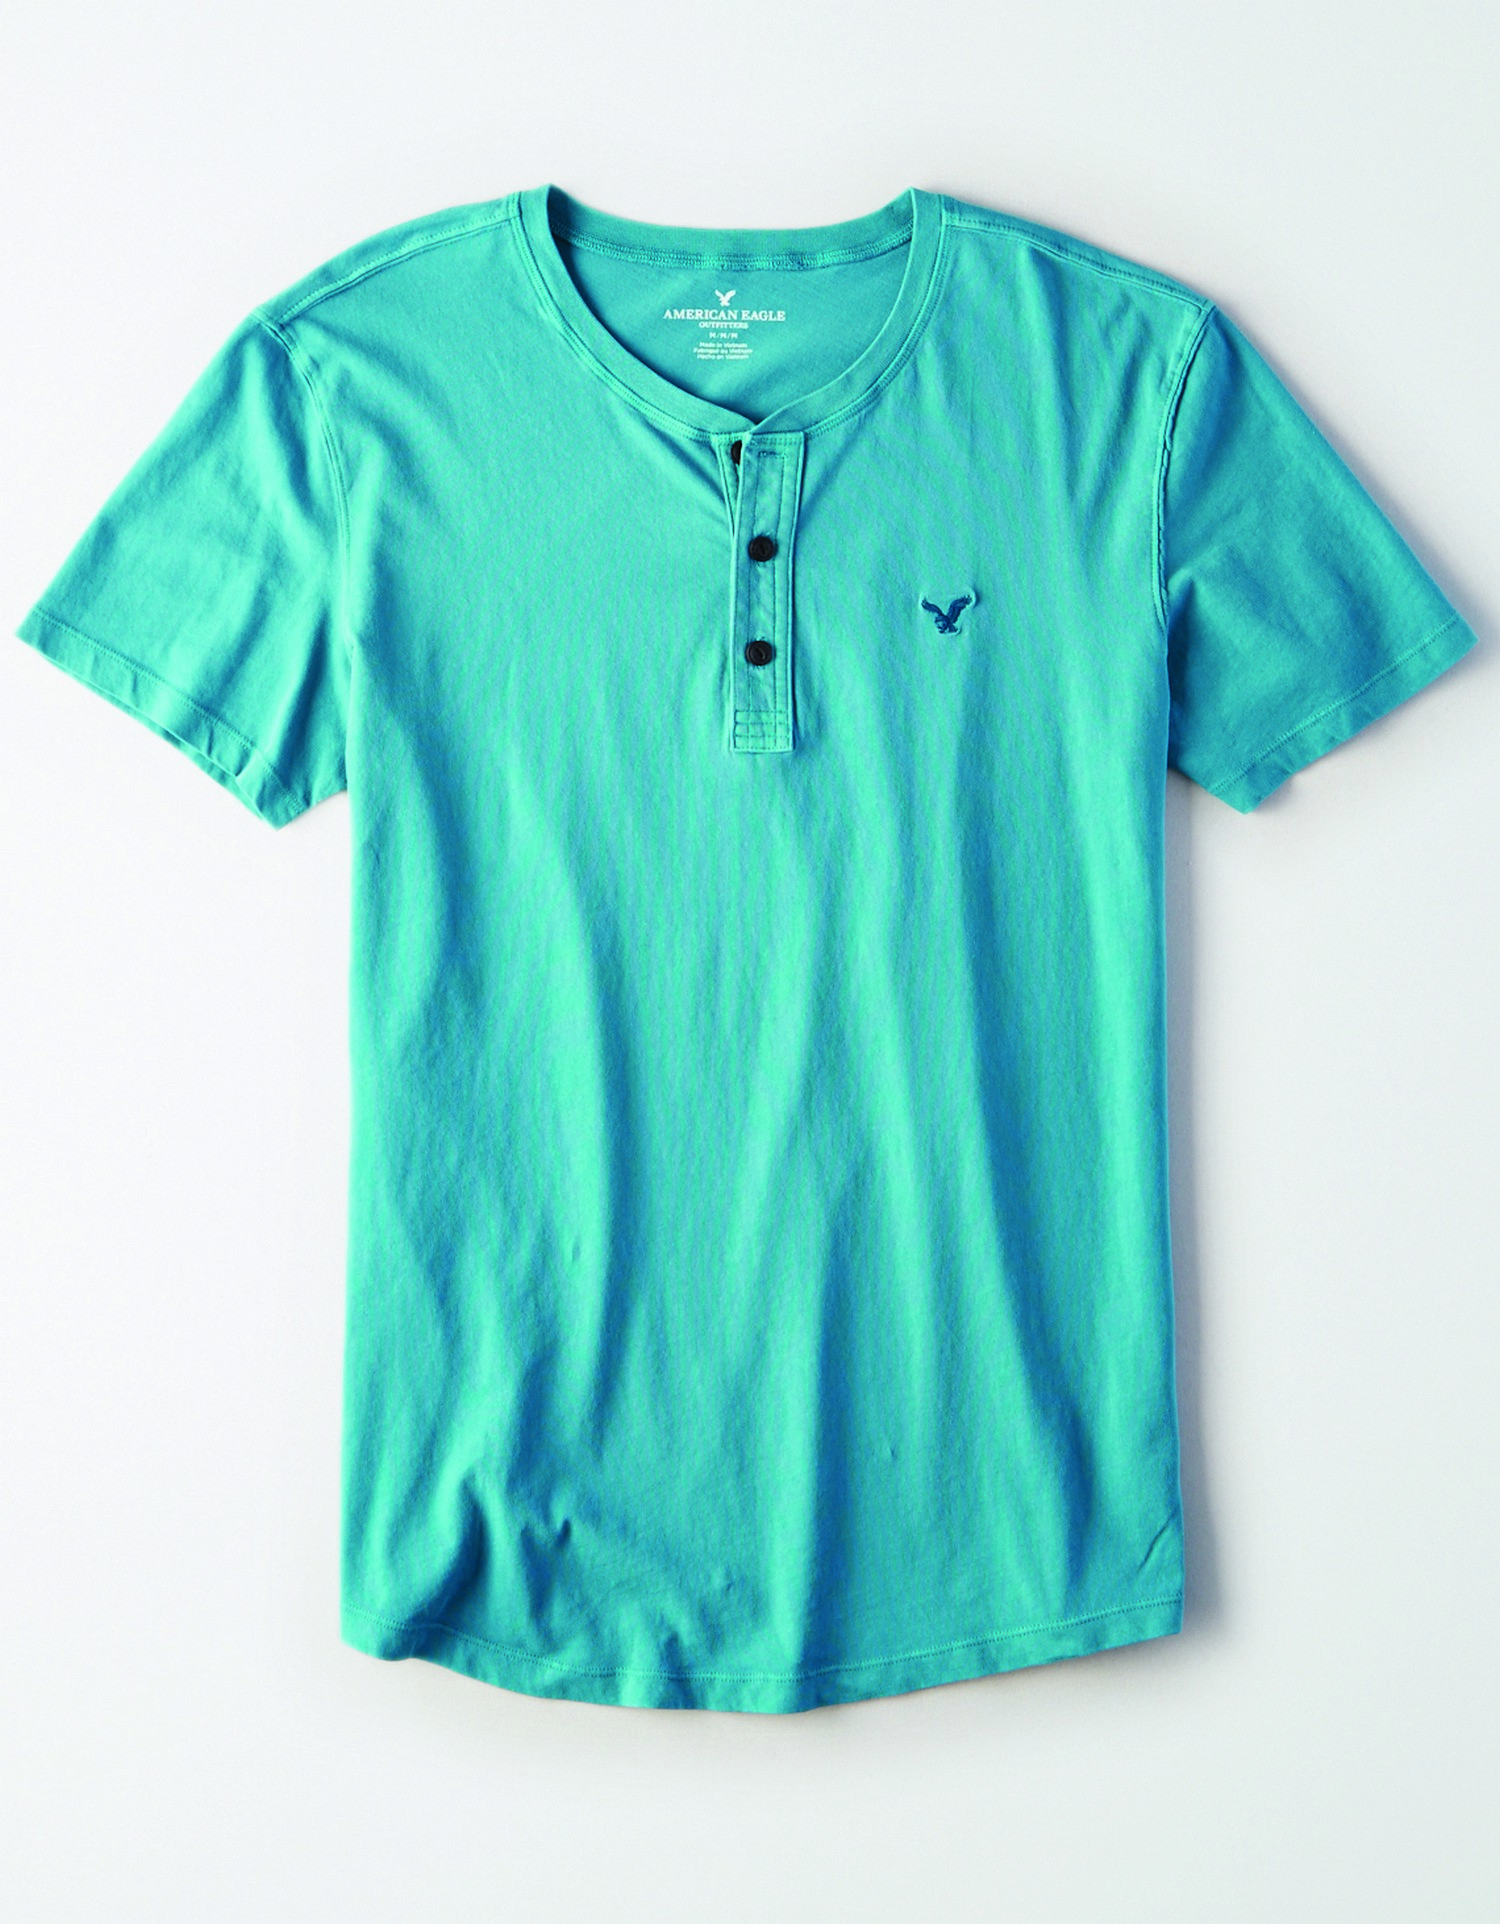 AE - INTL - Apparel - M - SS Henley Tee - Teal -  embroidered eagle on left chest - Black buttons BG